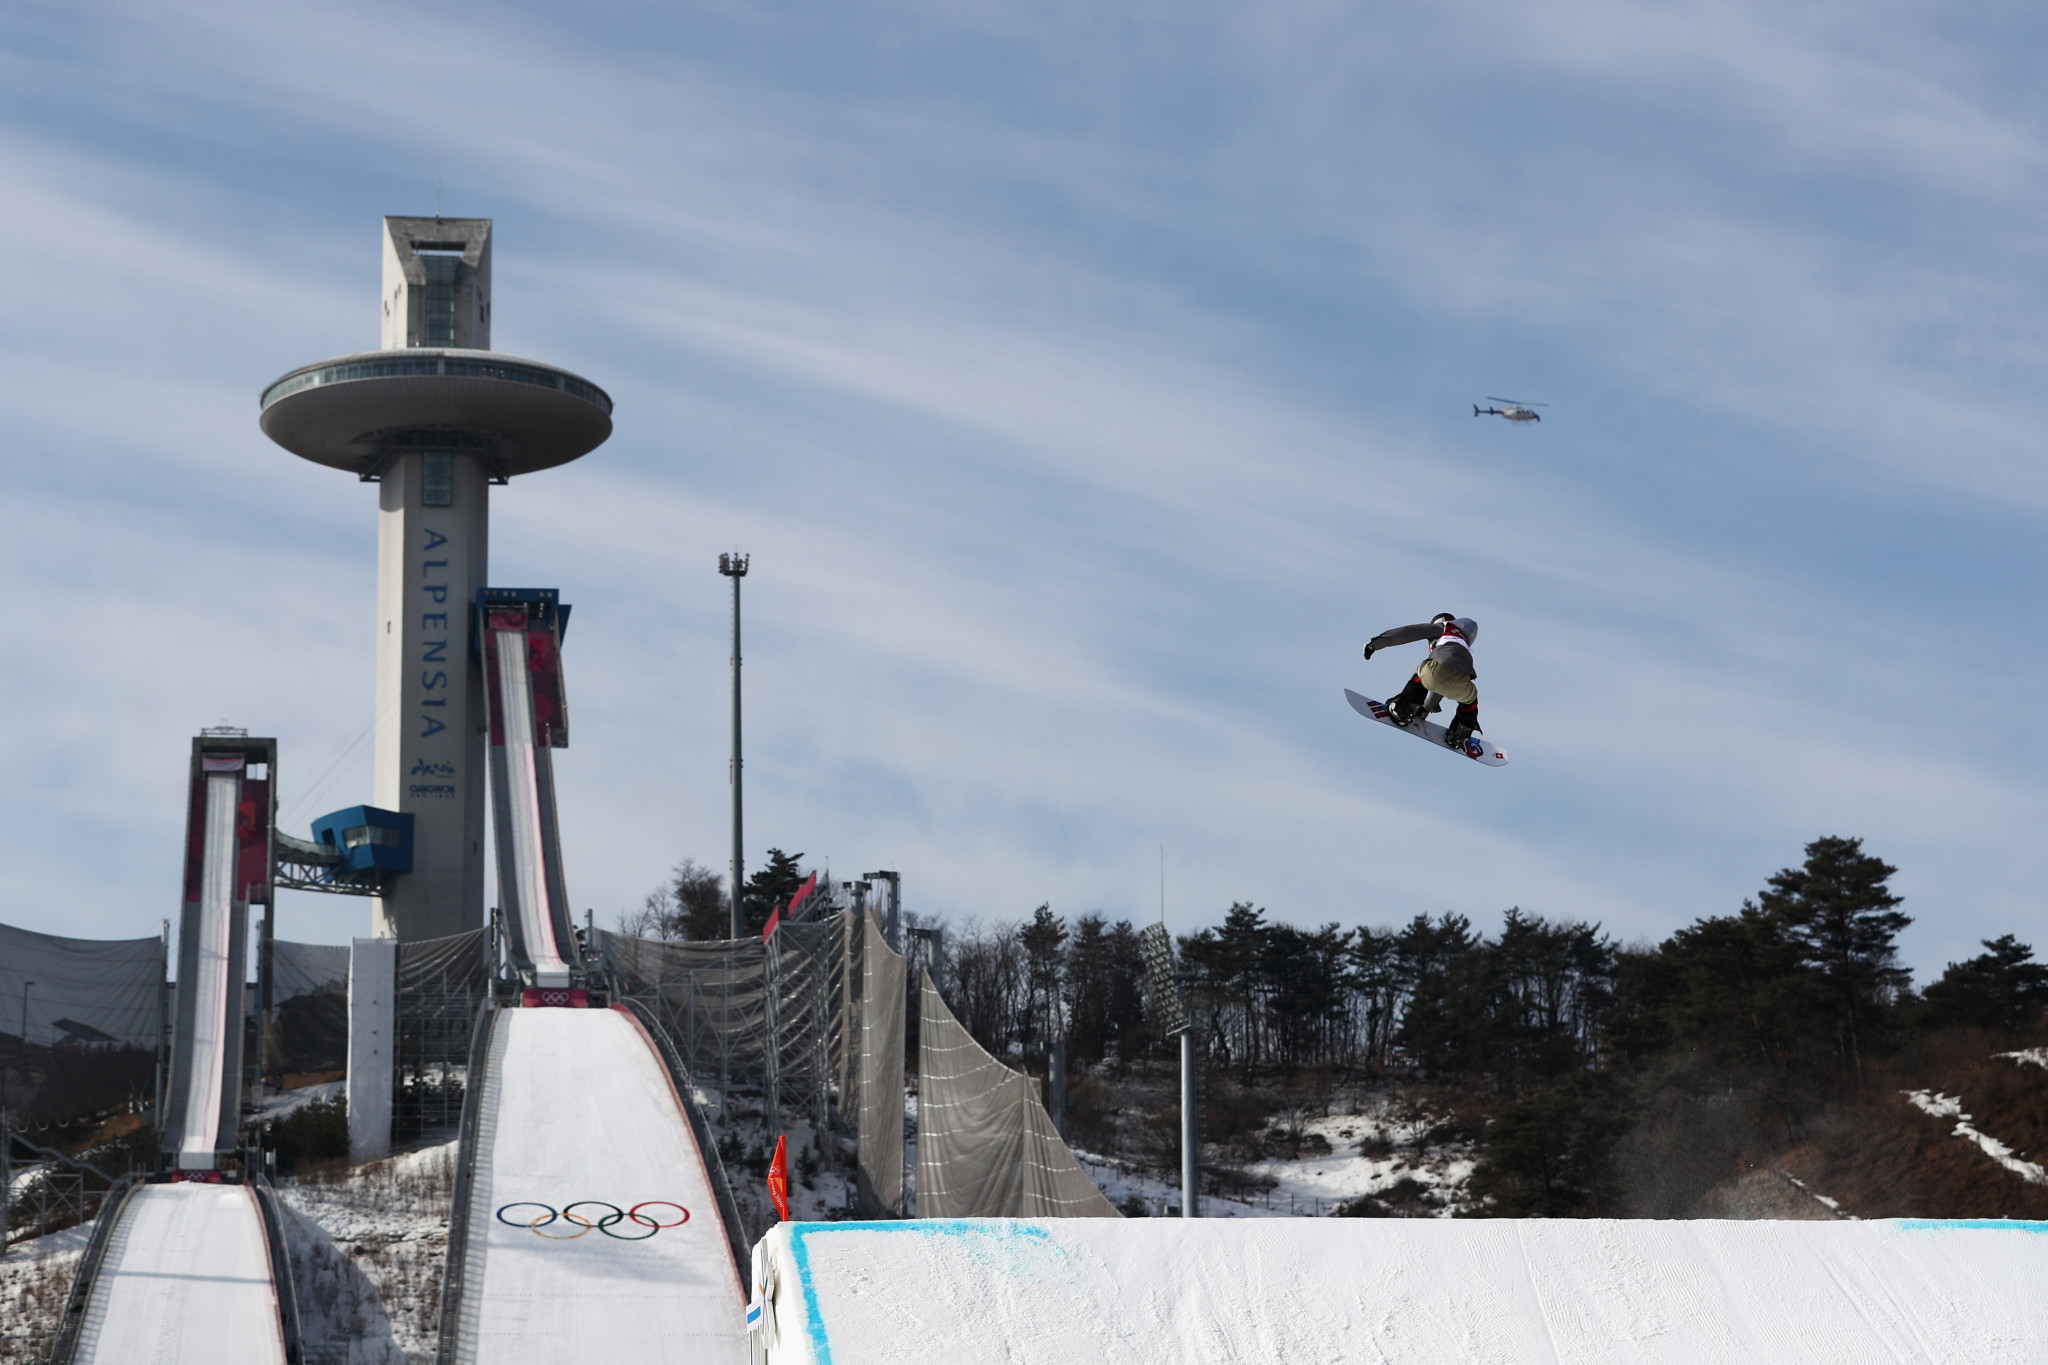 Big air qualification has begun today at Pyeongchang 2018 ©Getty Images